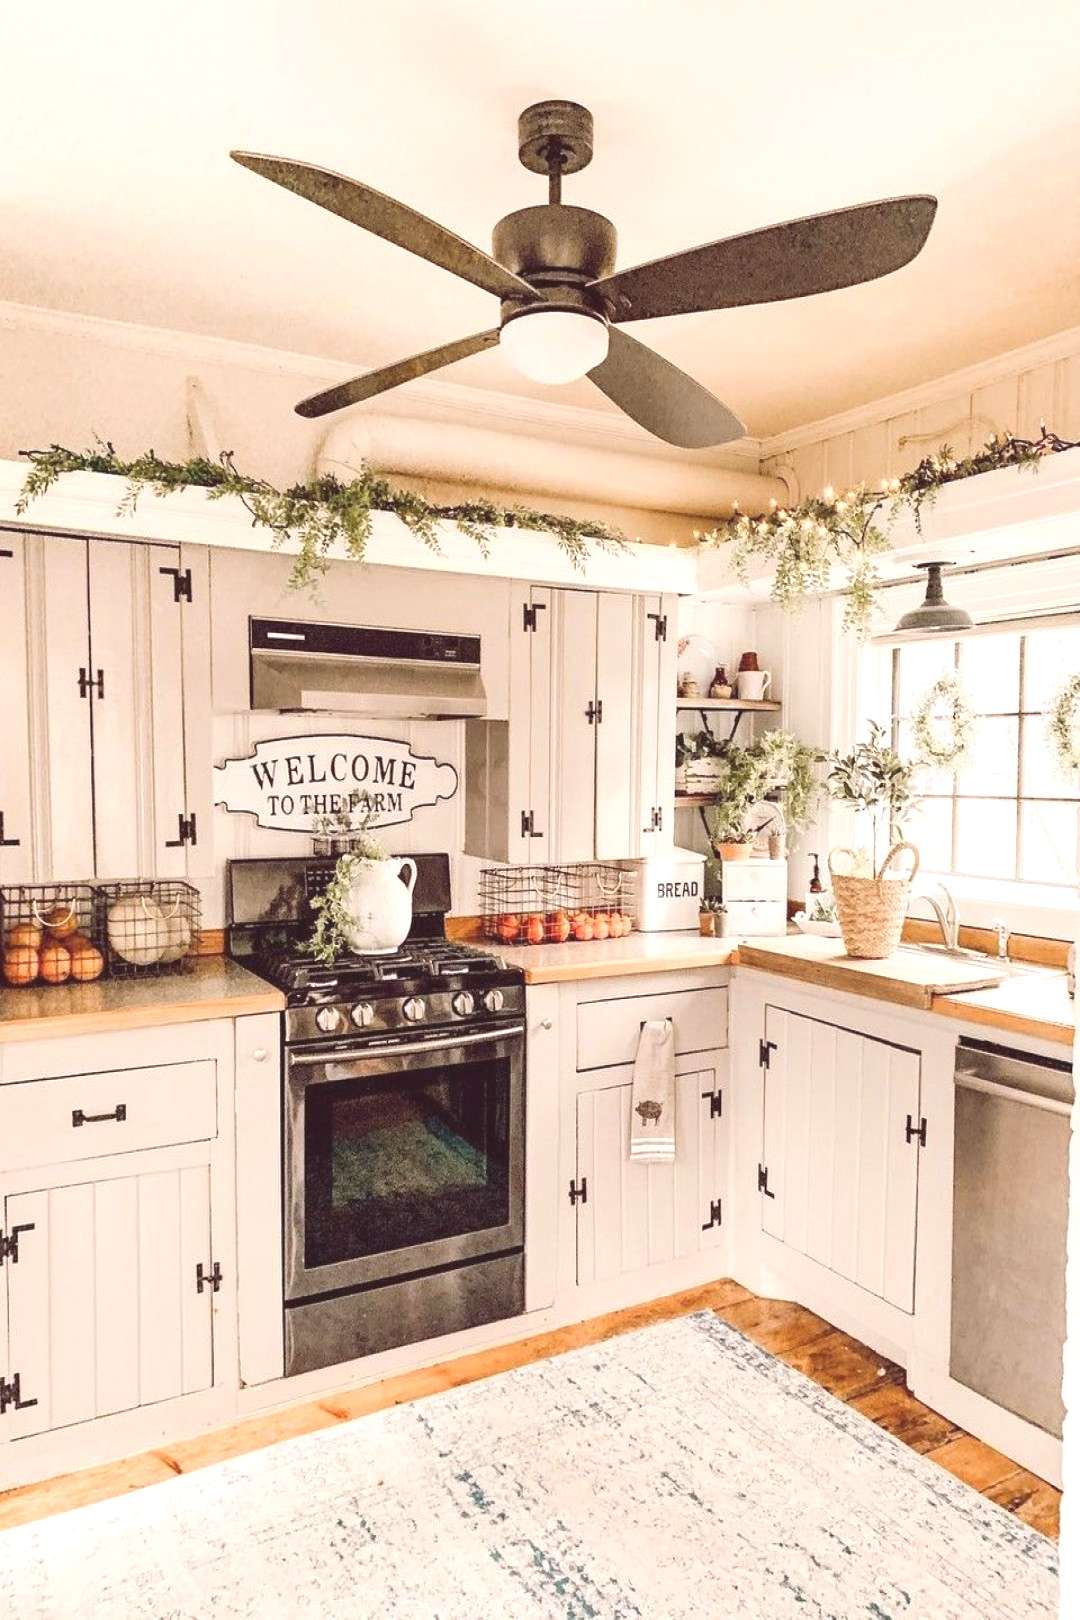 25 Affordable Farmhouse Kitchen Cabinets Ideas 25 Affordable Farmhouse Kitchen Cabinets Ideas